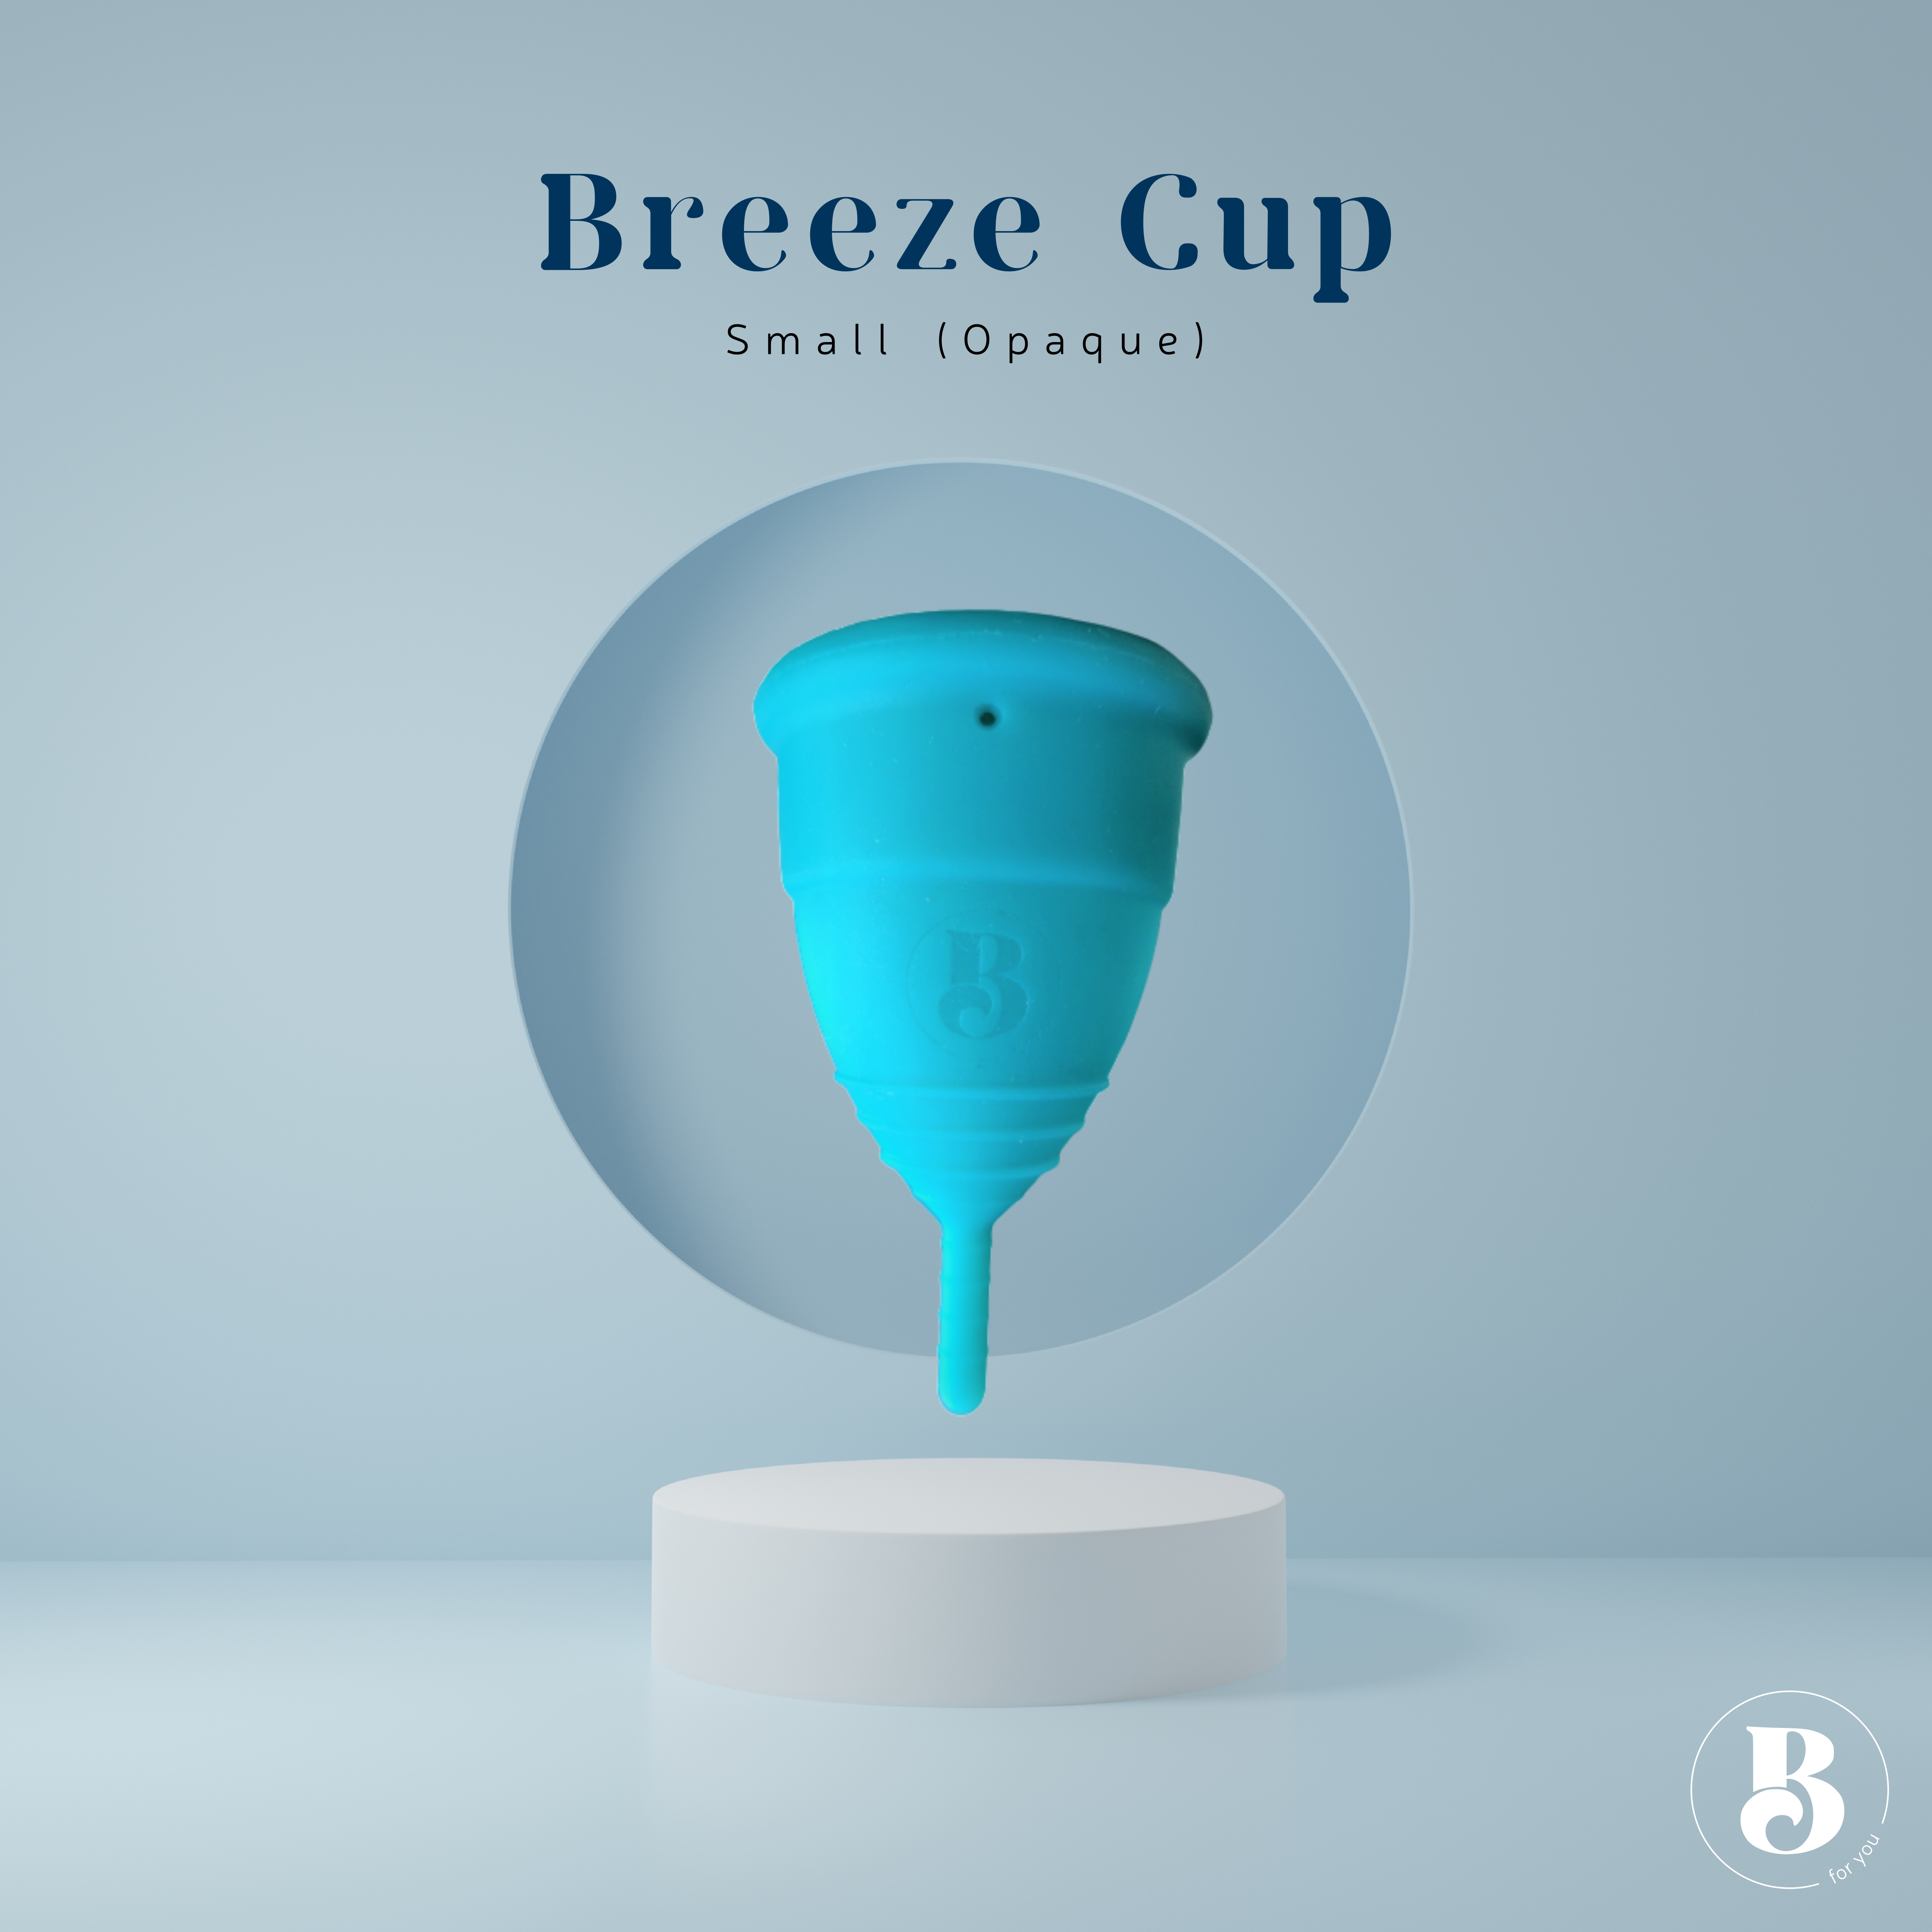 Breeze Cup Small Opaque